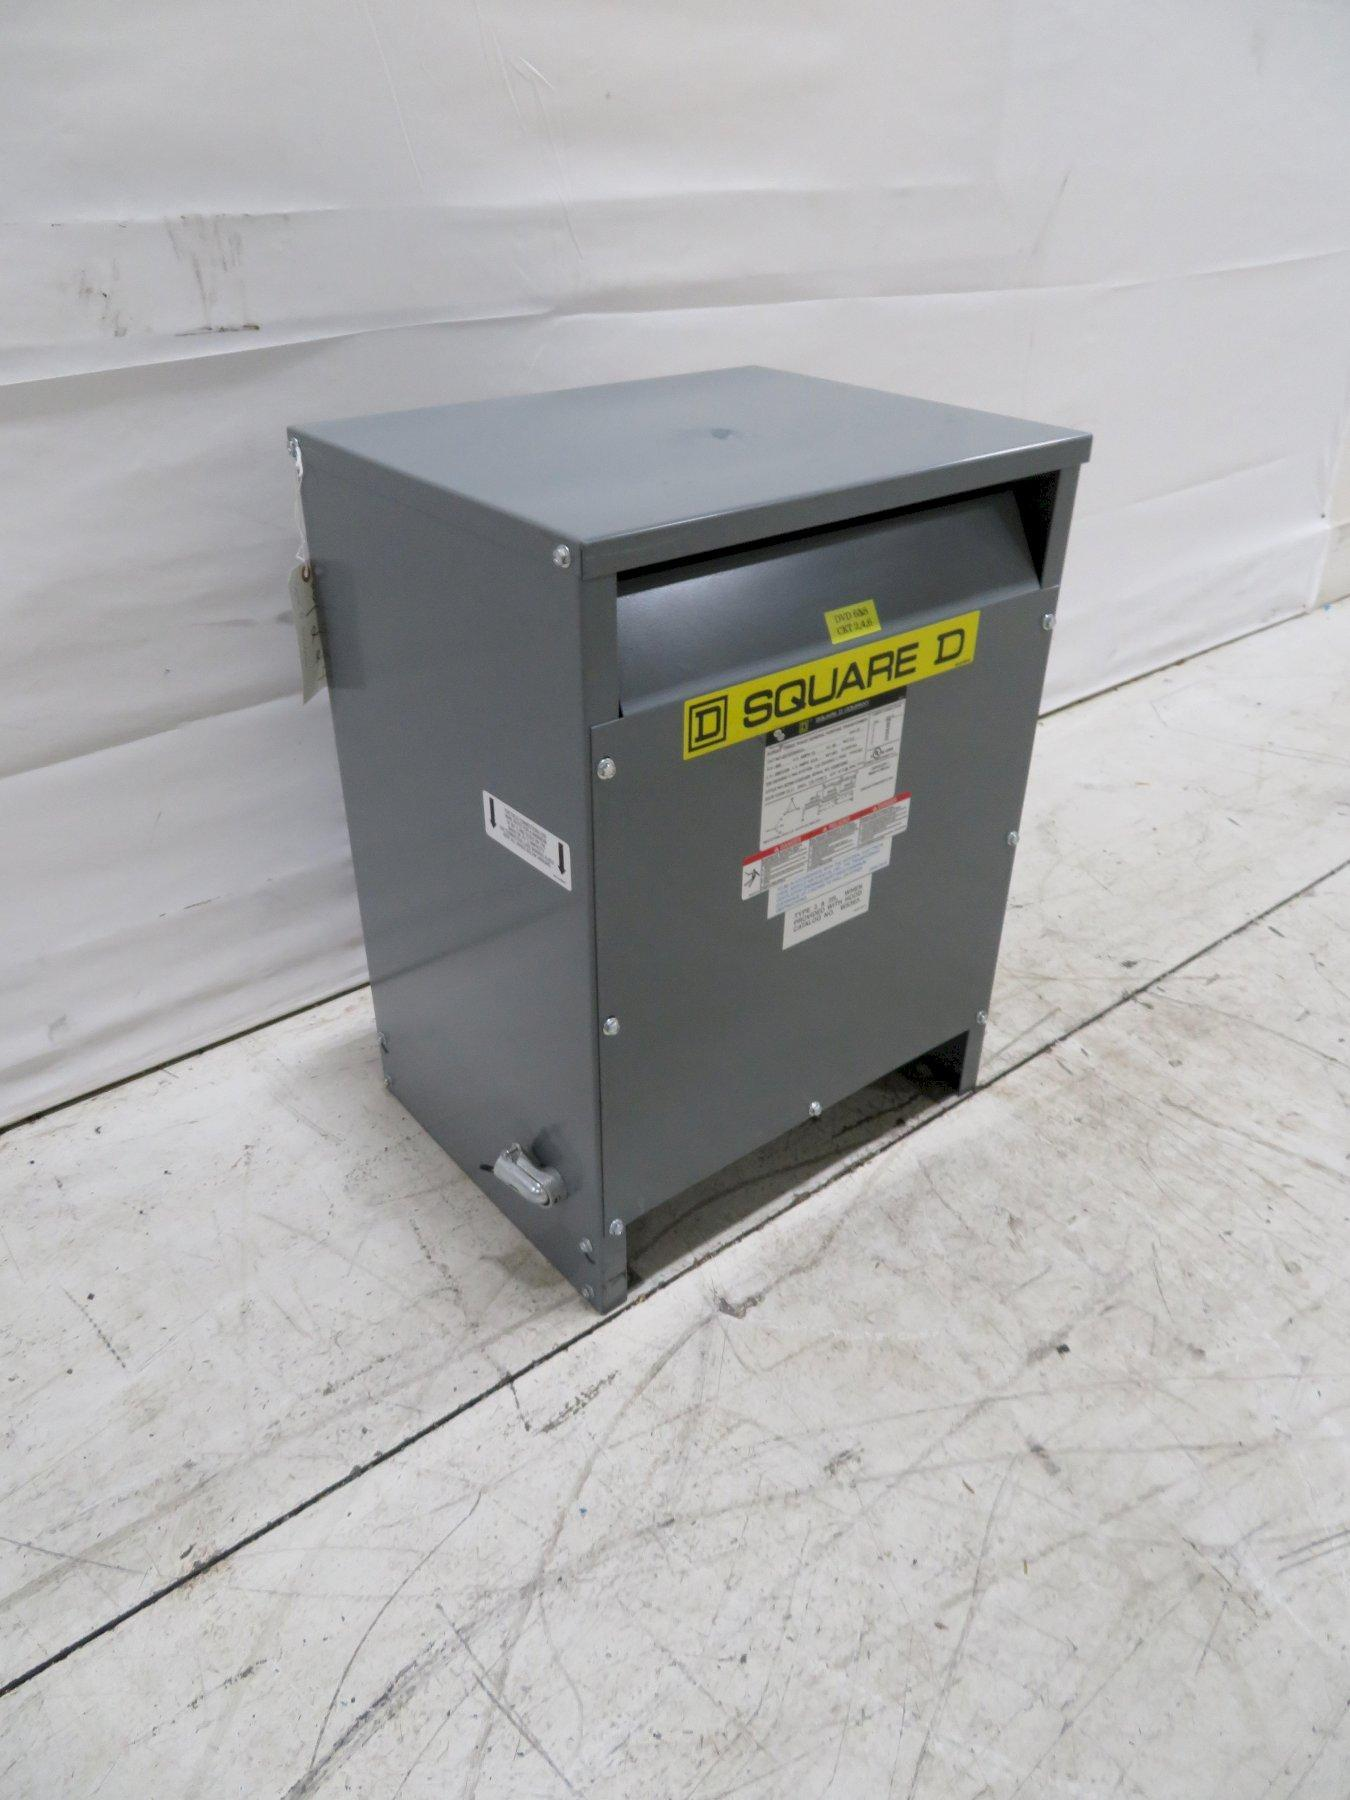 Square D Used EE15T3JFCU 3-Phase Transformer, 15KVA, 480V, 208V, 120V